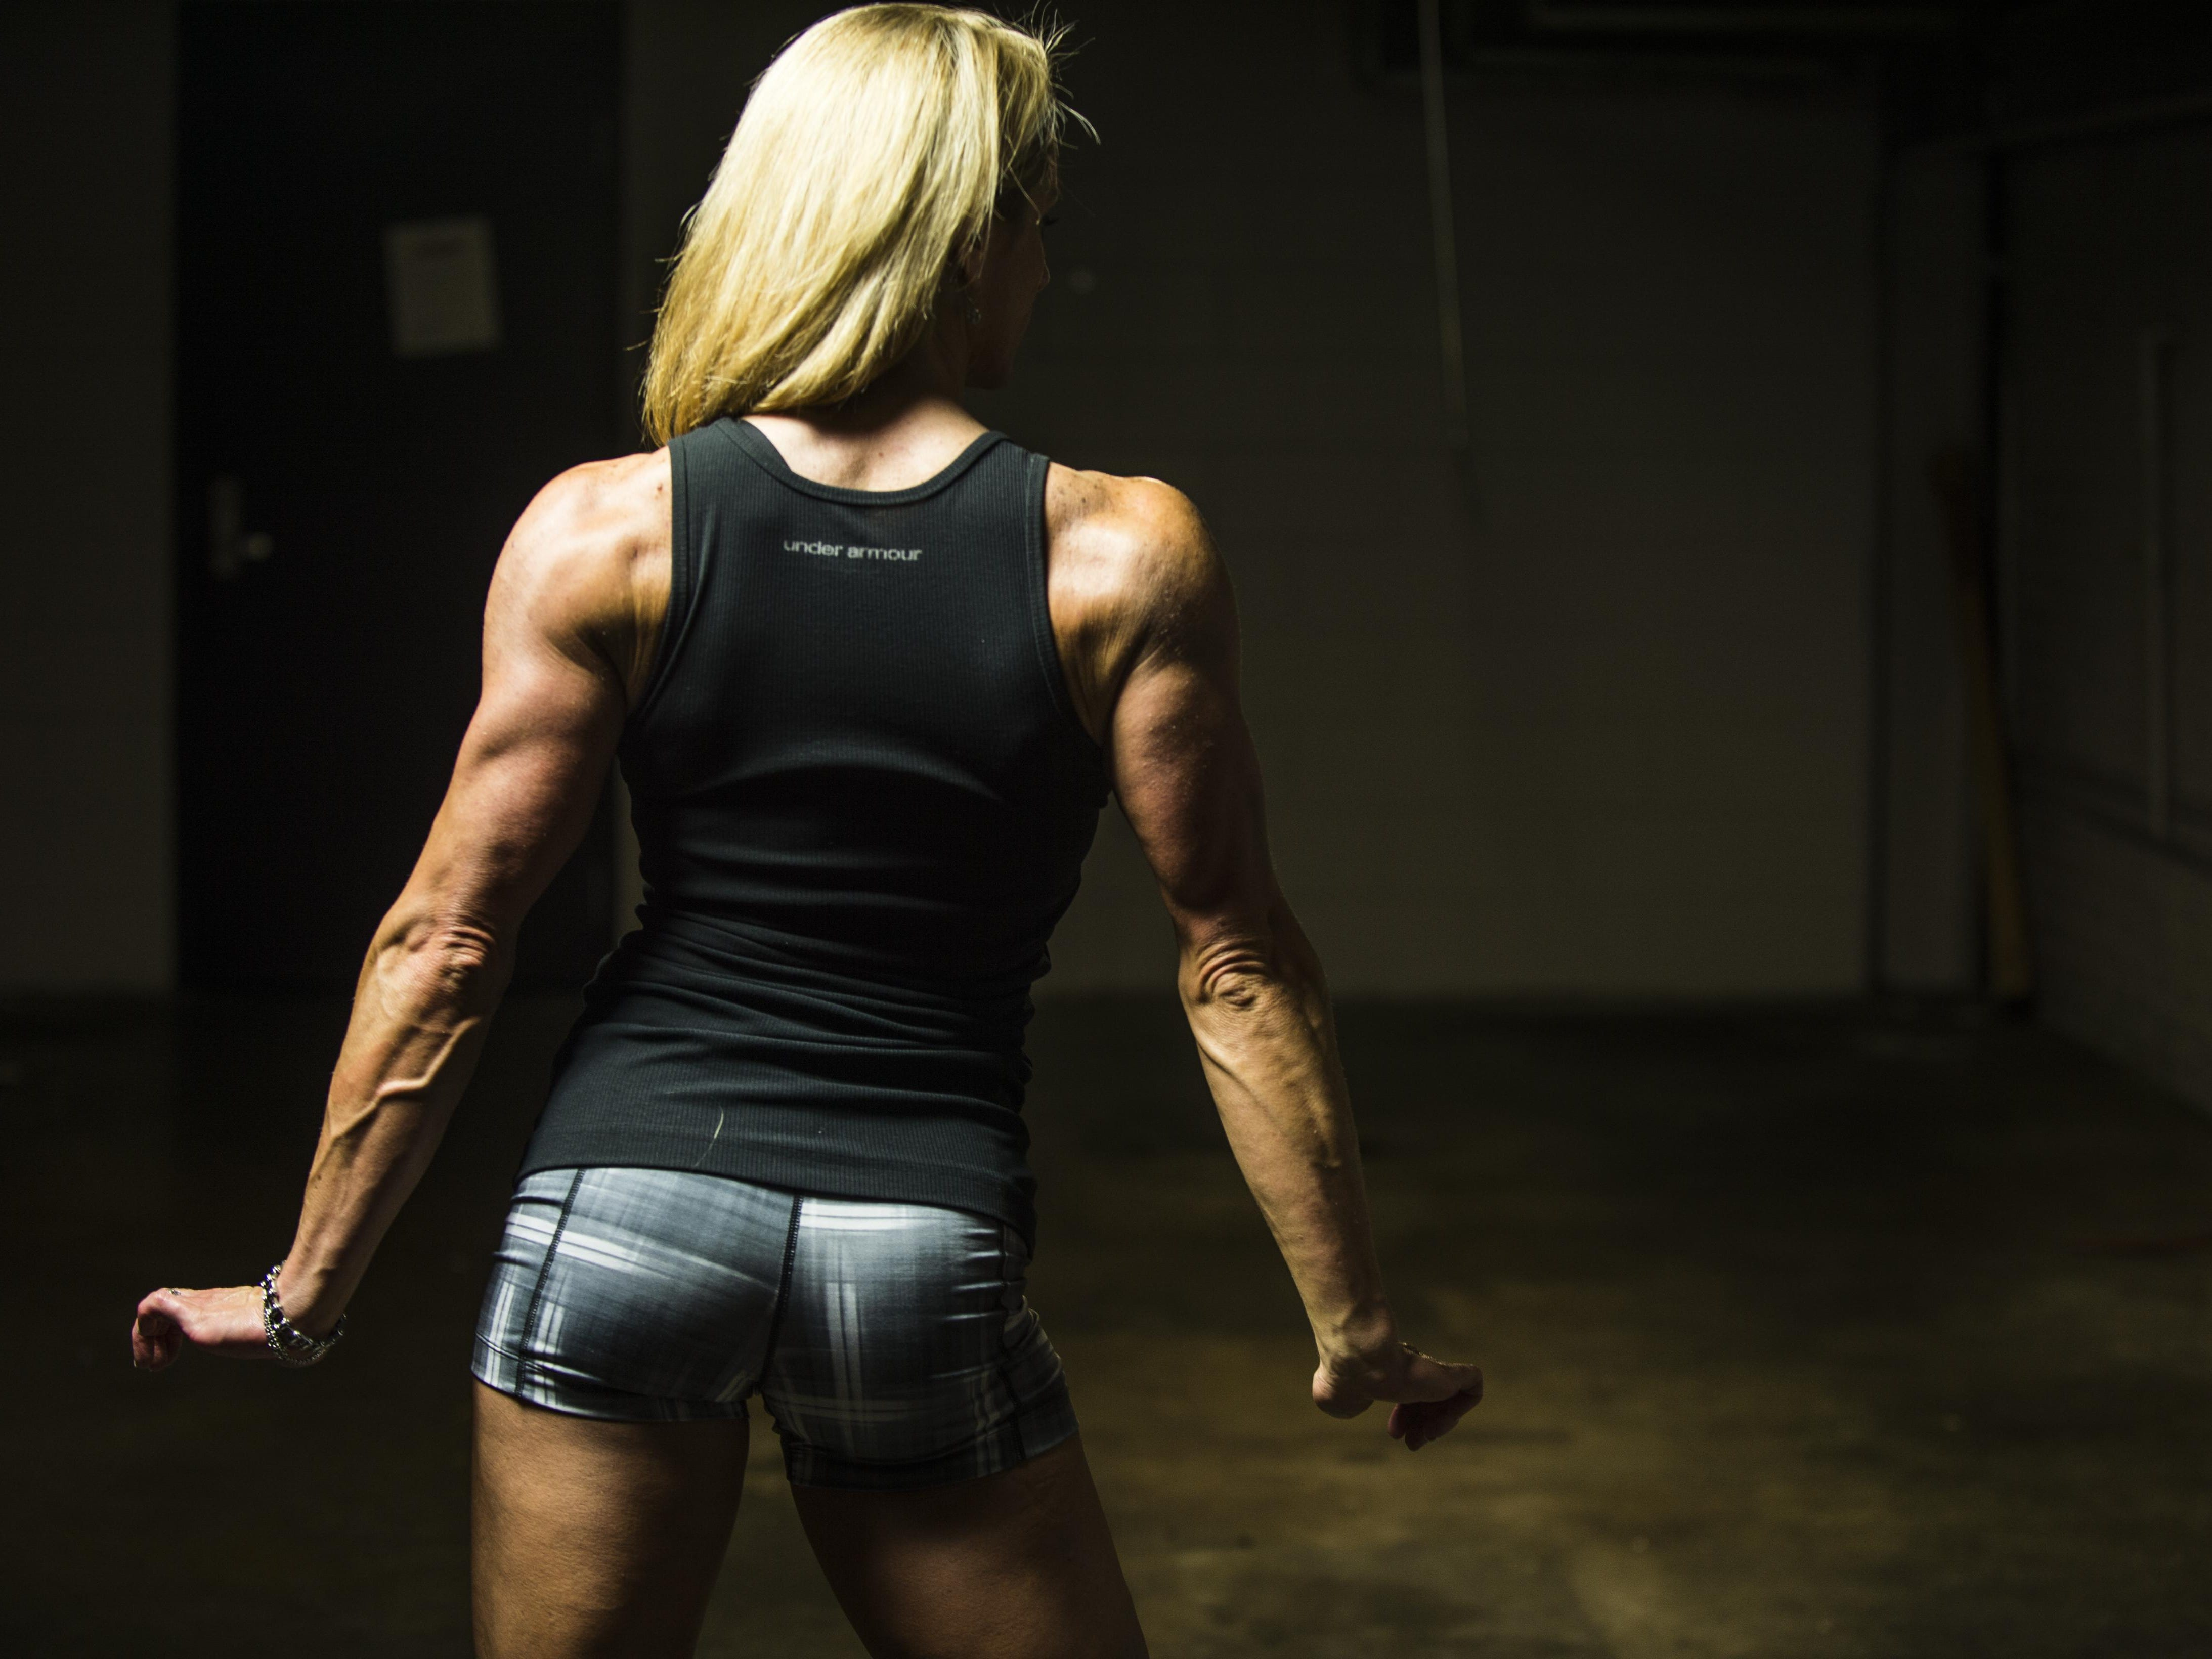 Marie Ann 'Mo' Newman poses for a portrait on Friday, July 31, 2015. Mo will compete in the Wings of Strength IFBB PBW Championships Tampa Pro in Tampa, Florida, on Friday, August 7.